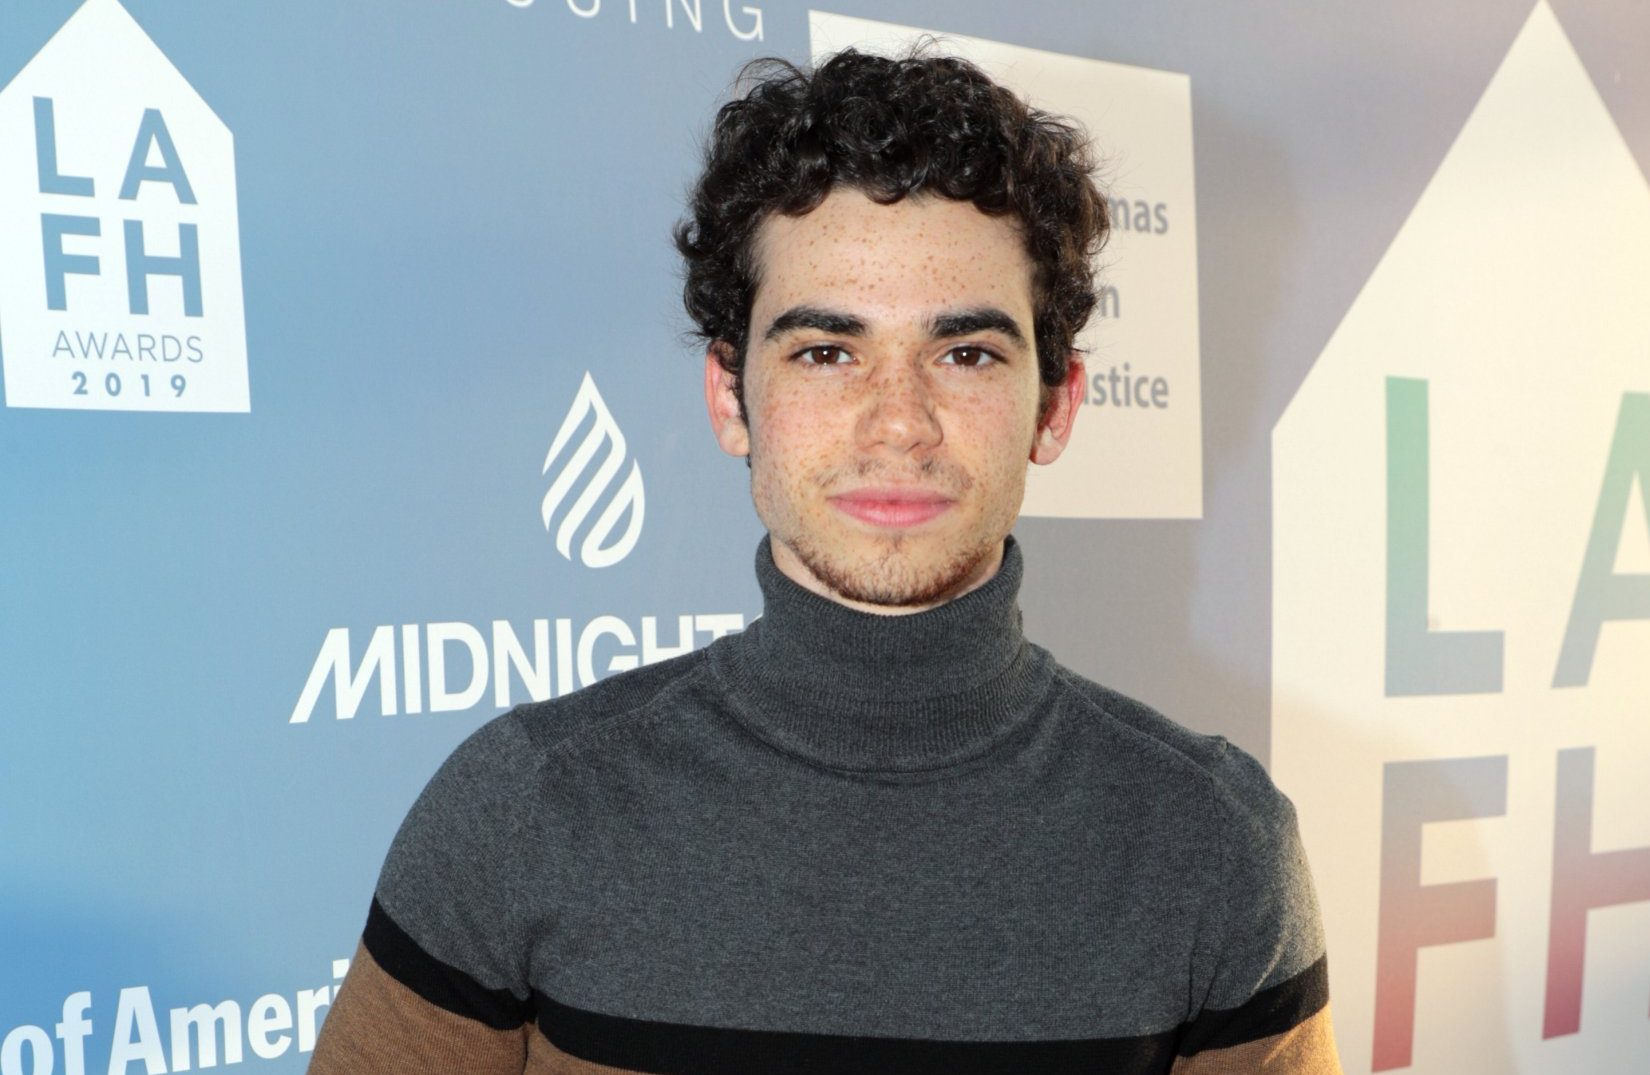 Mandatory Credit: Photo by Eric Charbonneau/REX/Shutterstock (10219076a) Cameron Boyce LAFH Awards 2019, Los Angeles, USA - 25 Apr 2019